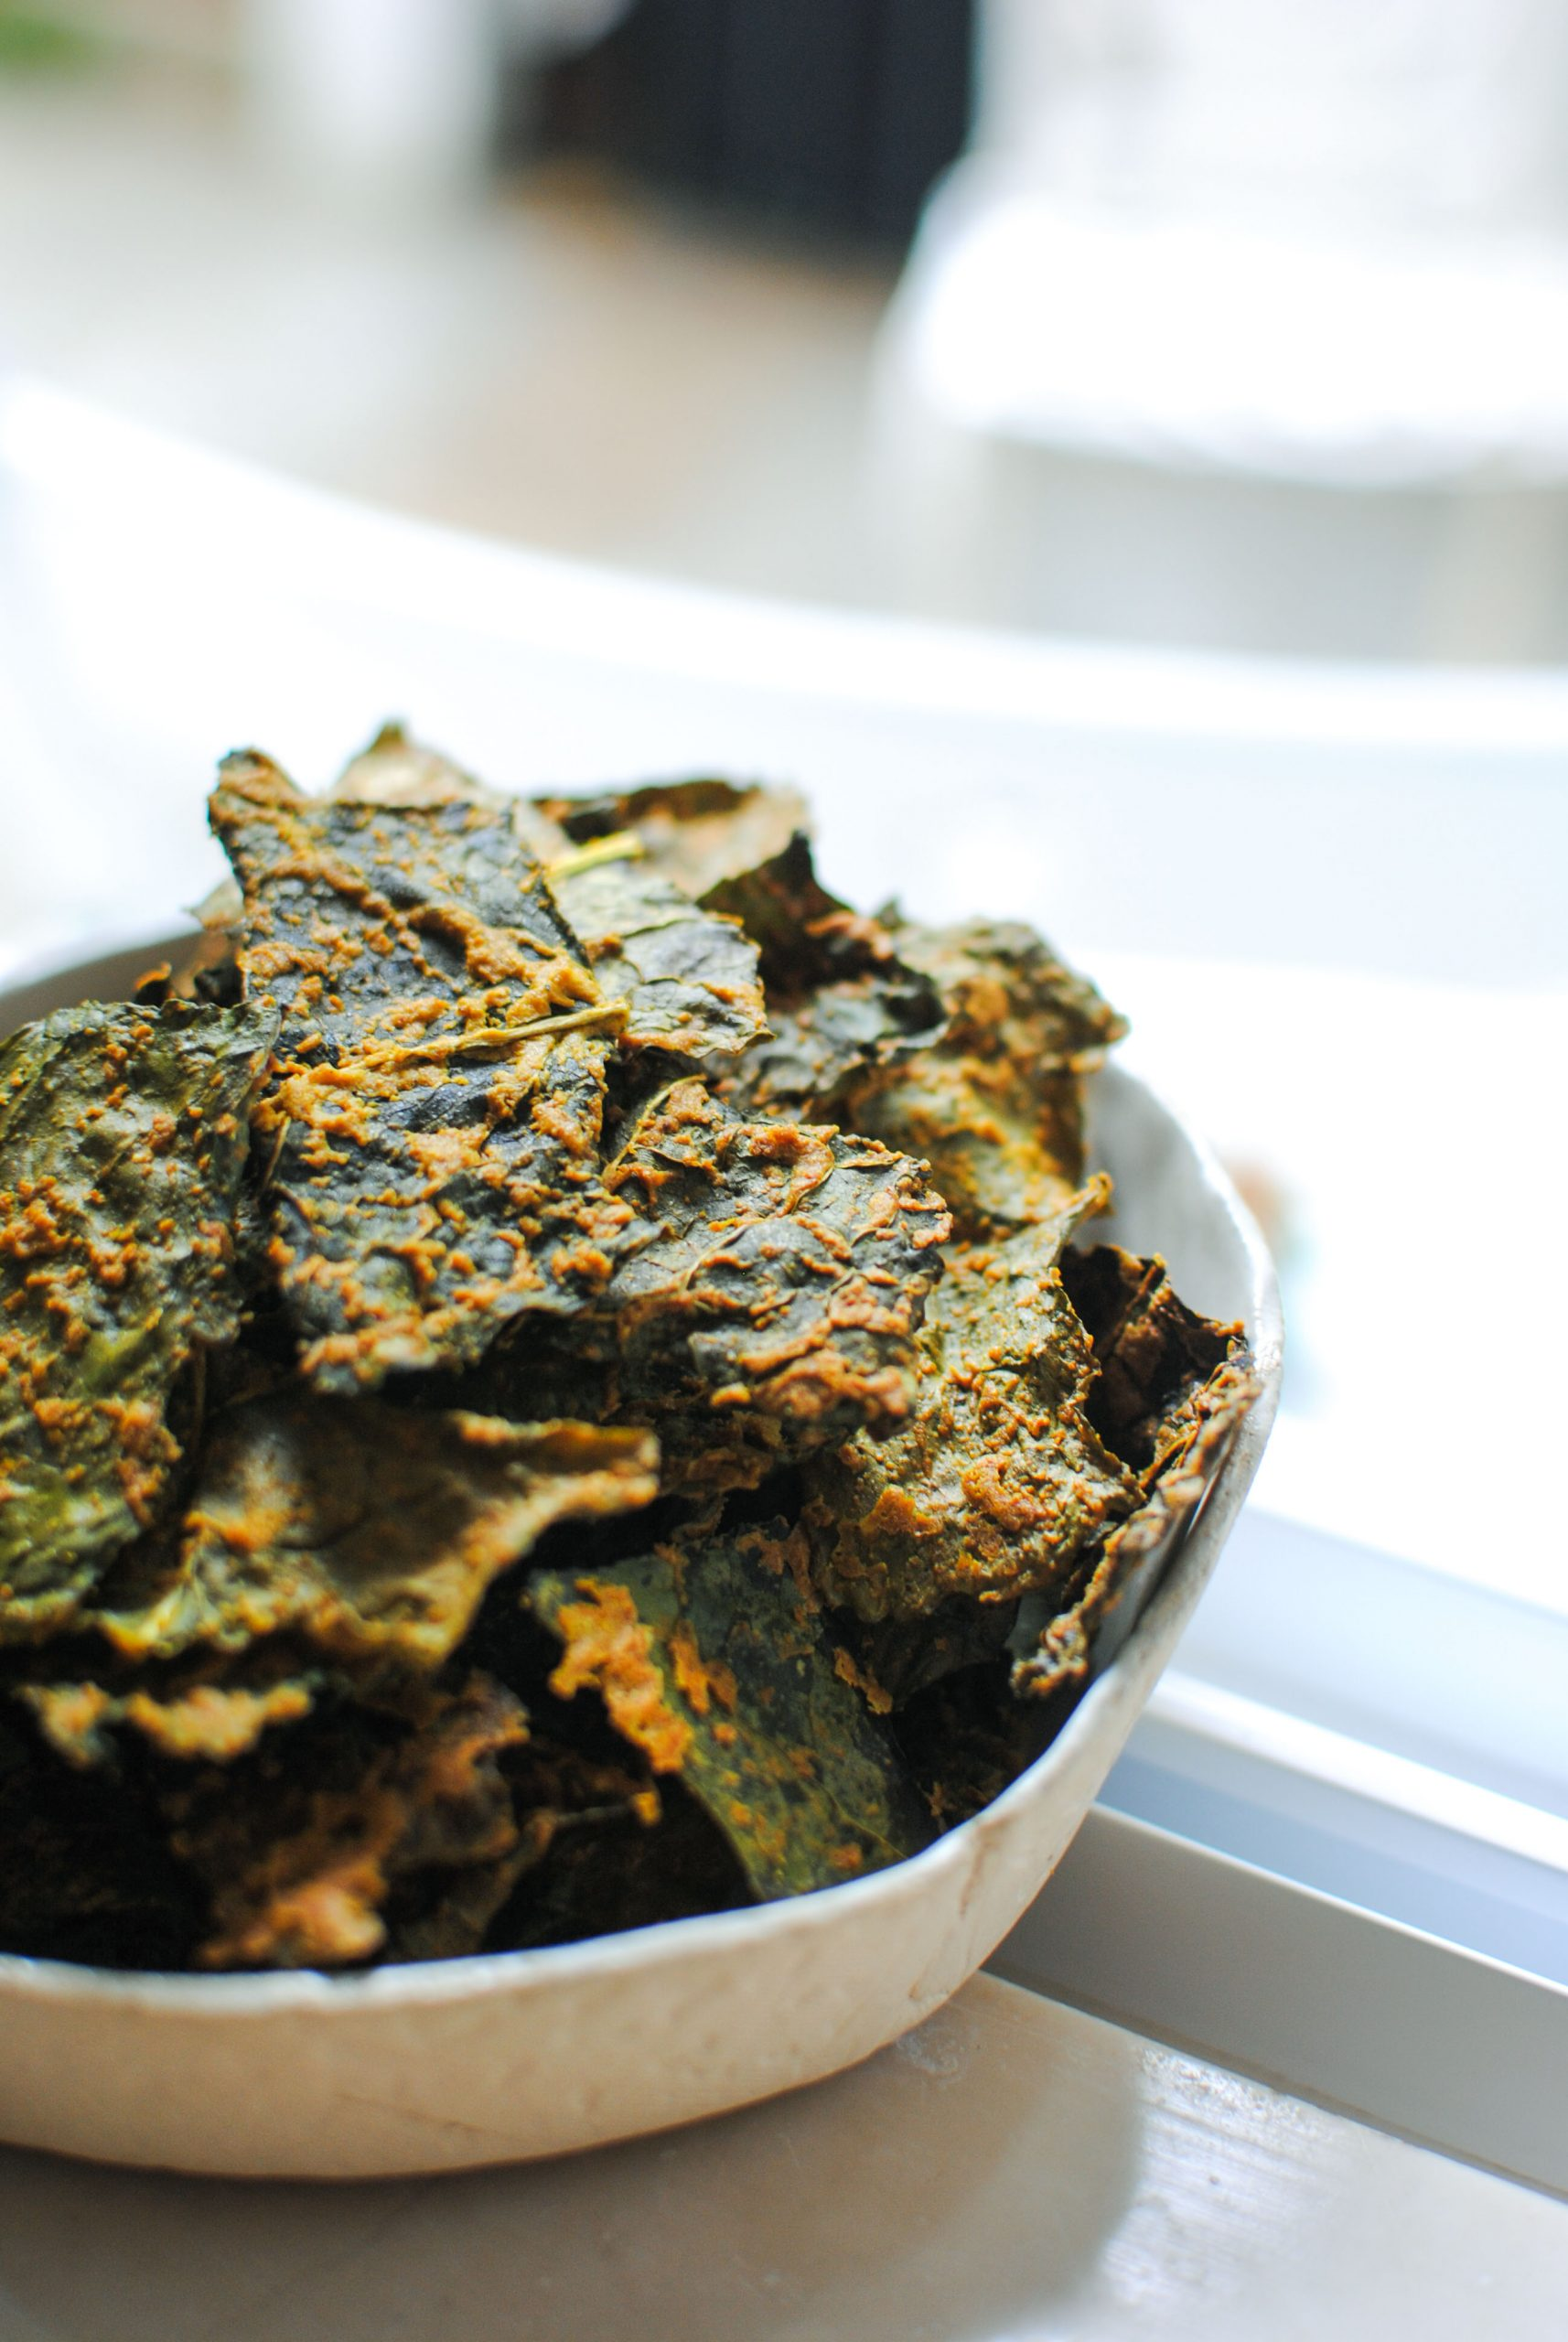 curry kale chips | please consider | joana limao